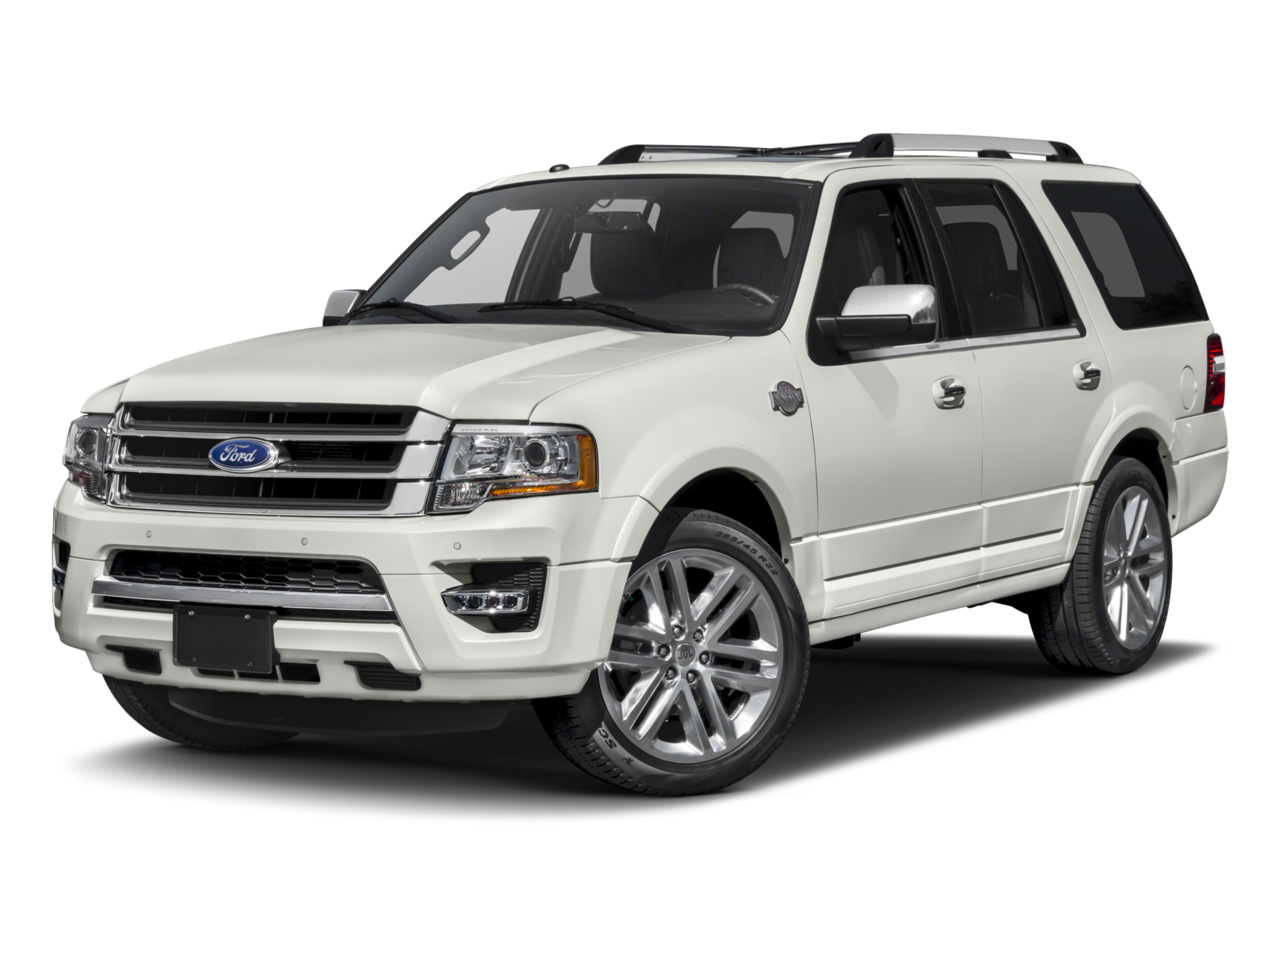 2017 Ford Expedition In Phoenix Az